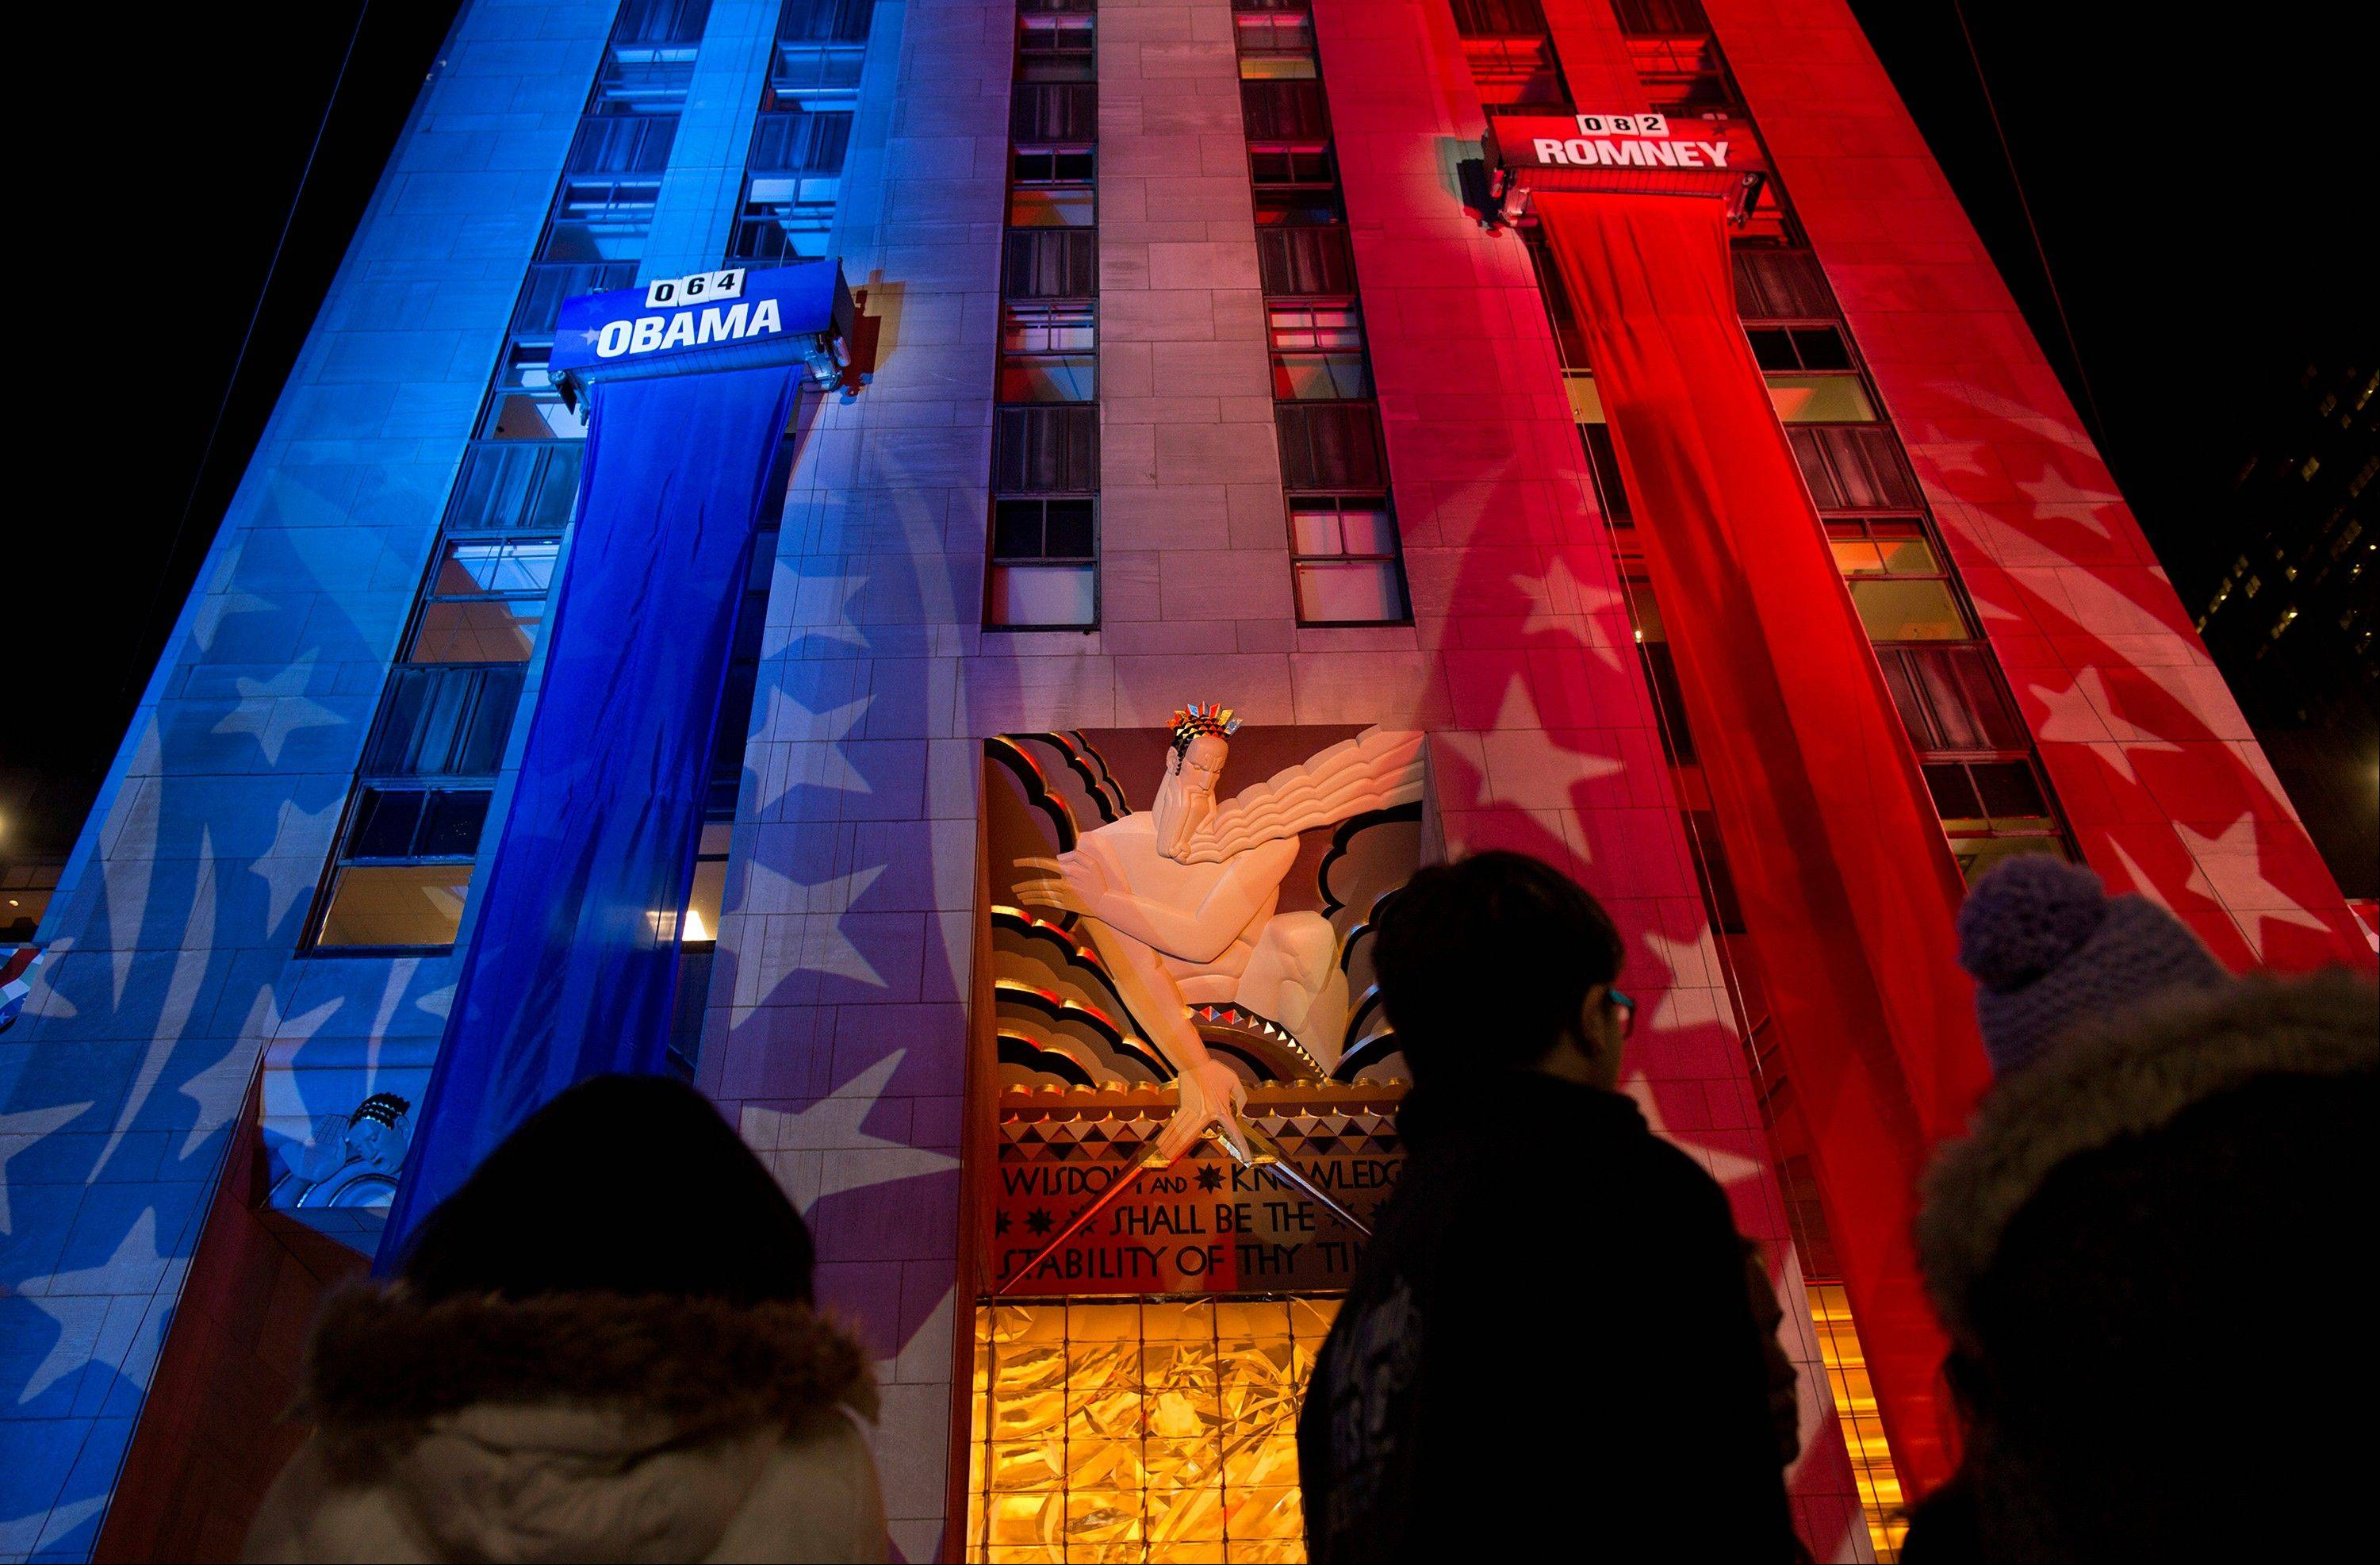 People watch early election results displayed on a utility lift suspended from the front of the GE Building at Rockefeller Center New York, Tuesday, Nov. 6, 2012.